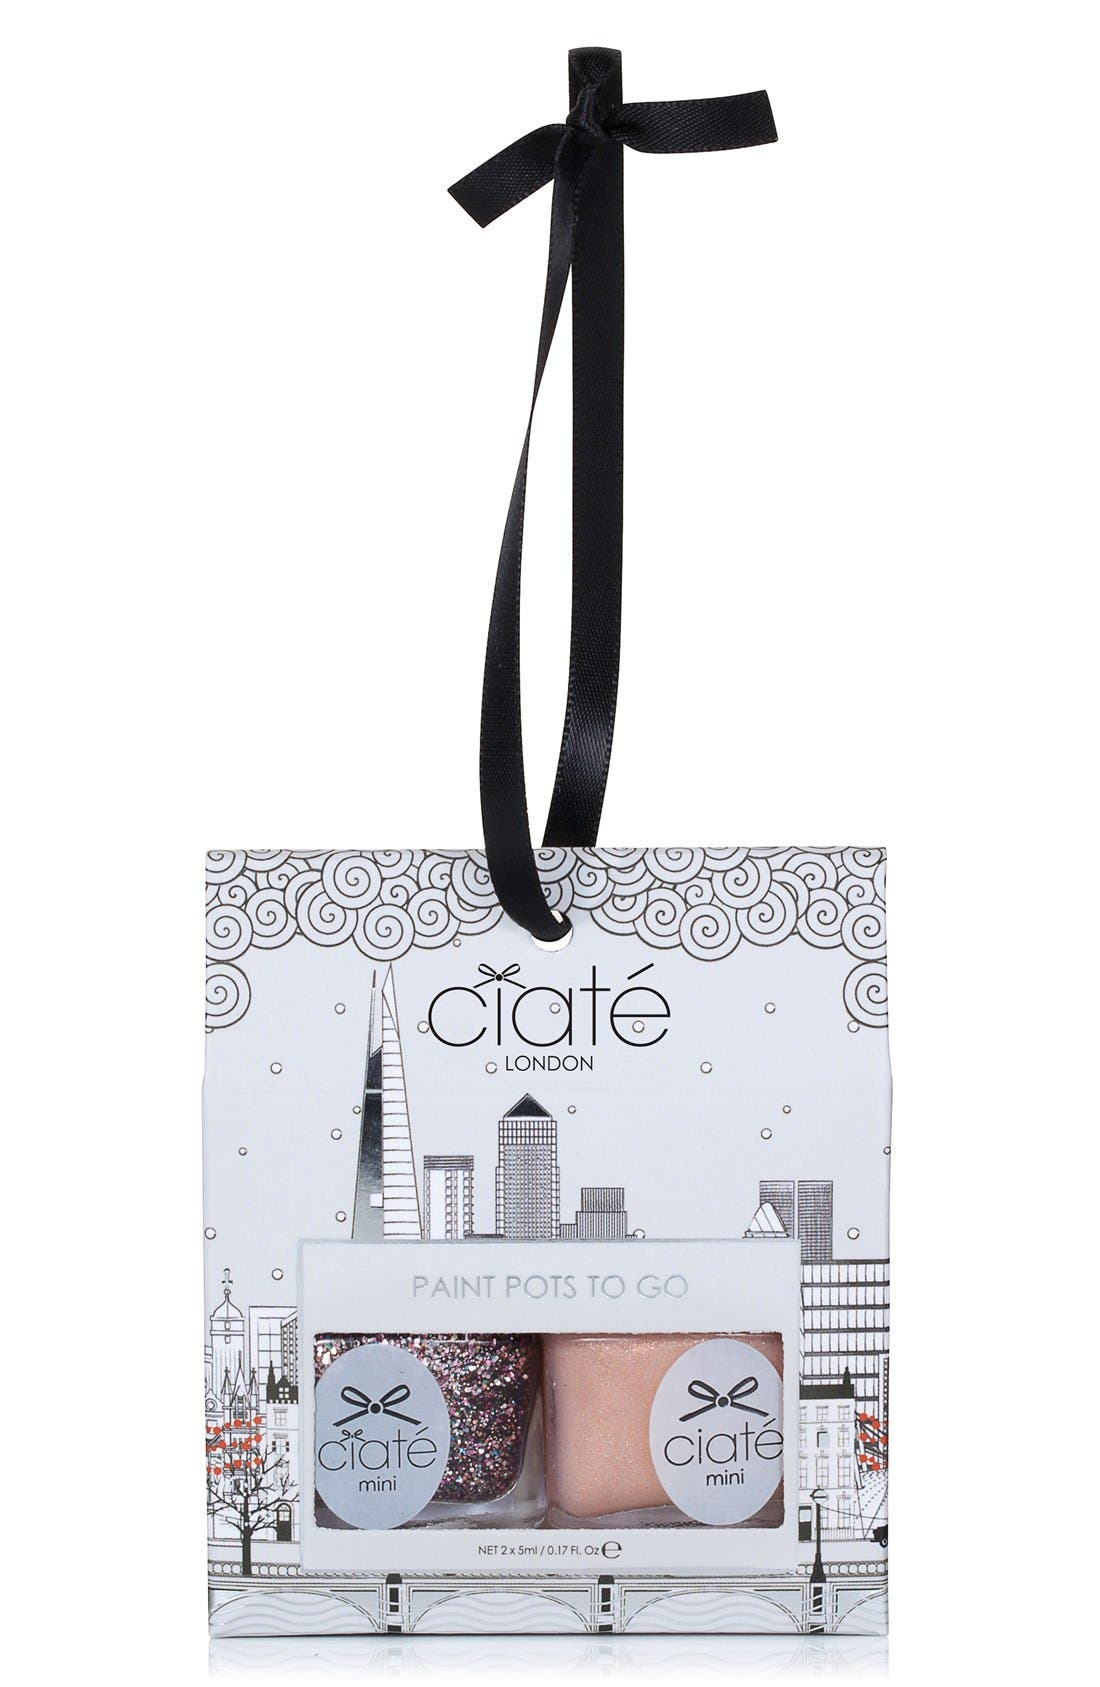 Ciaté 'Taupe' Paint Pot Duo to Go (Limited Edition)